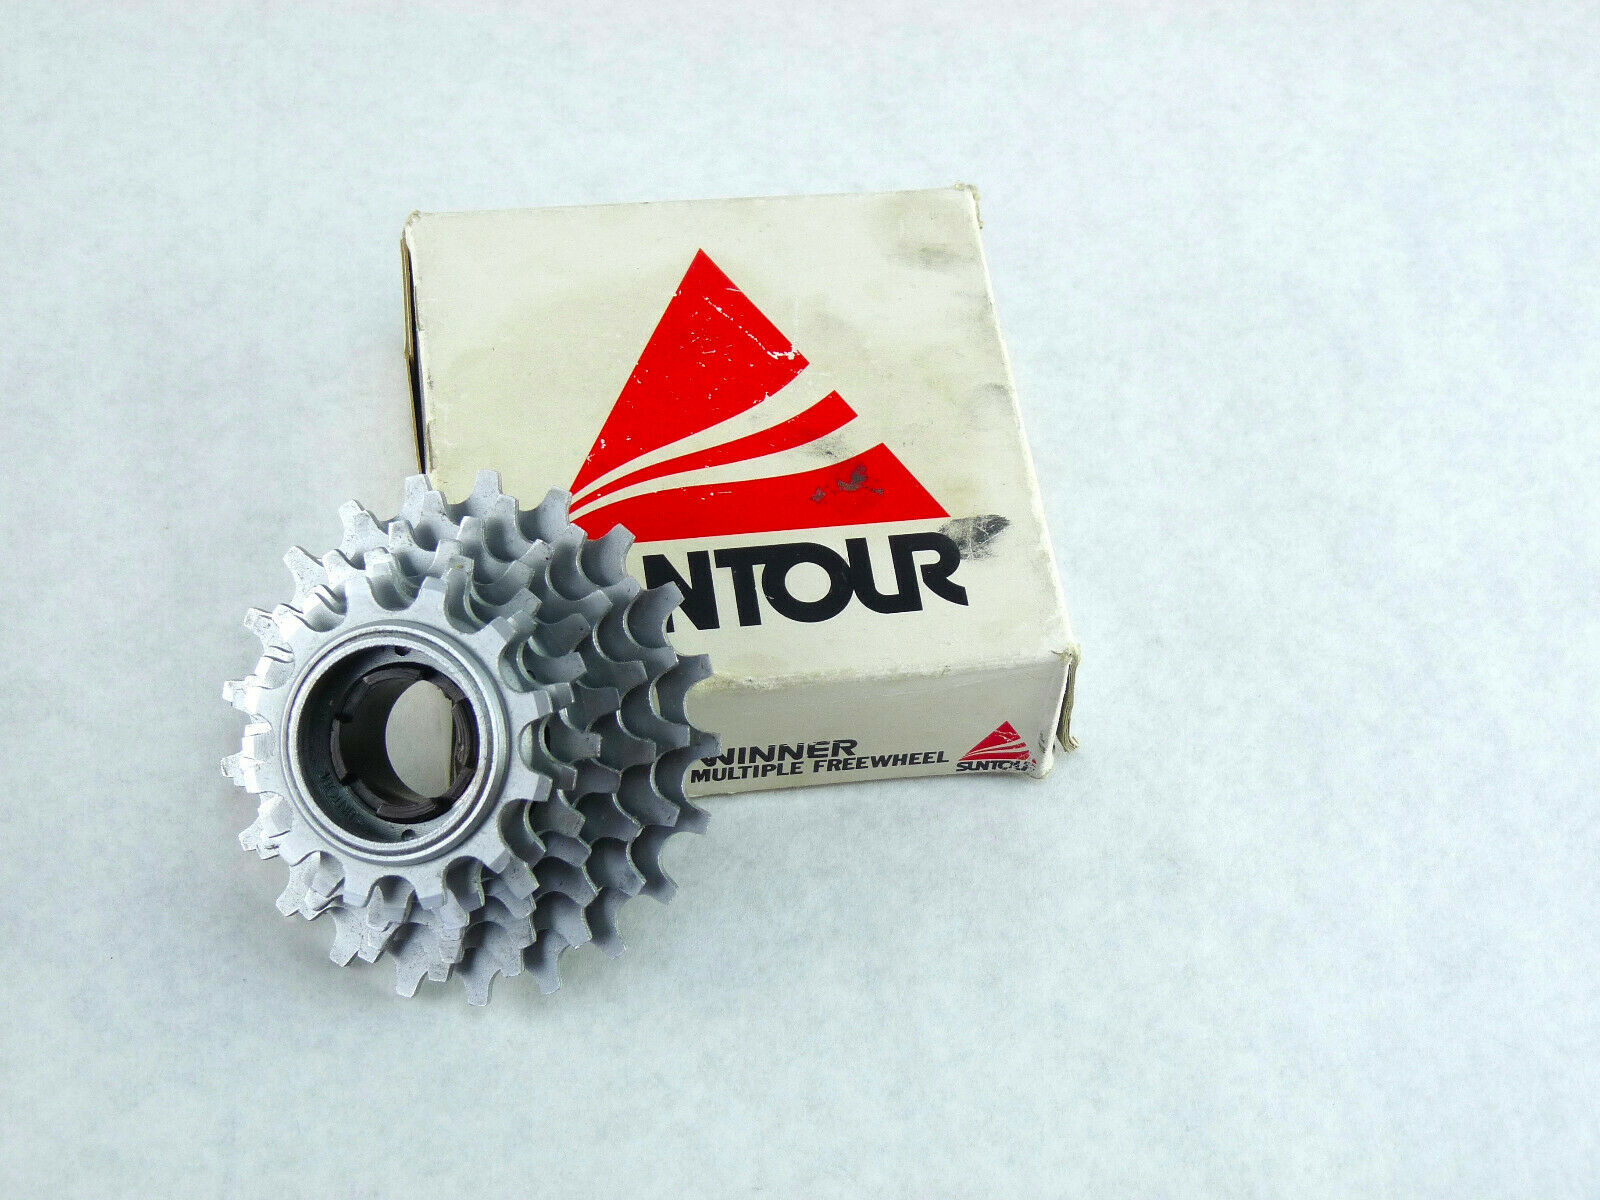 Suntour 7 speed  Winner Freewheel 12-21 Vintage Road Bike ISO NOS  40% off